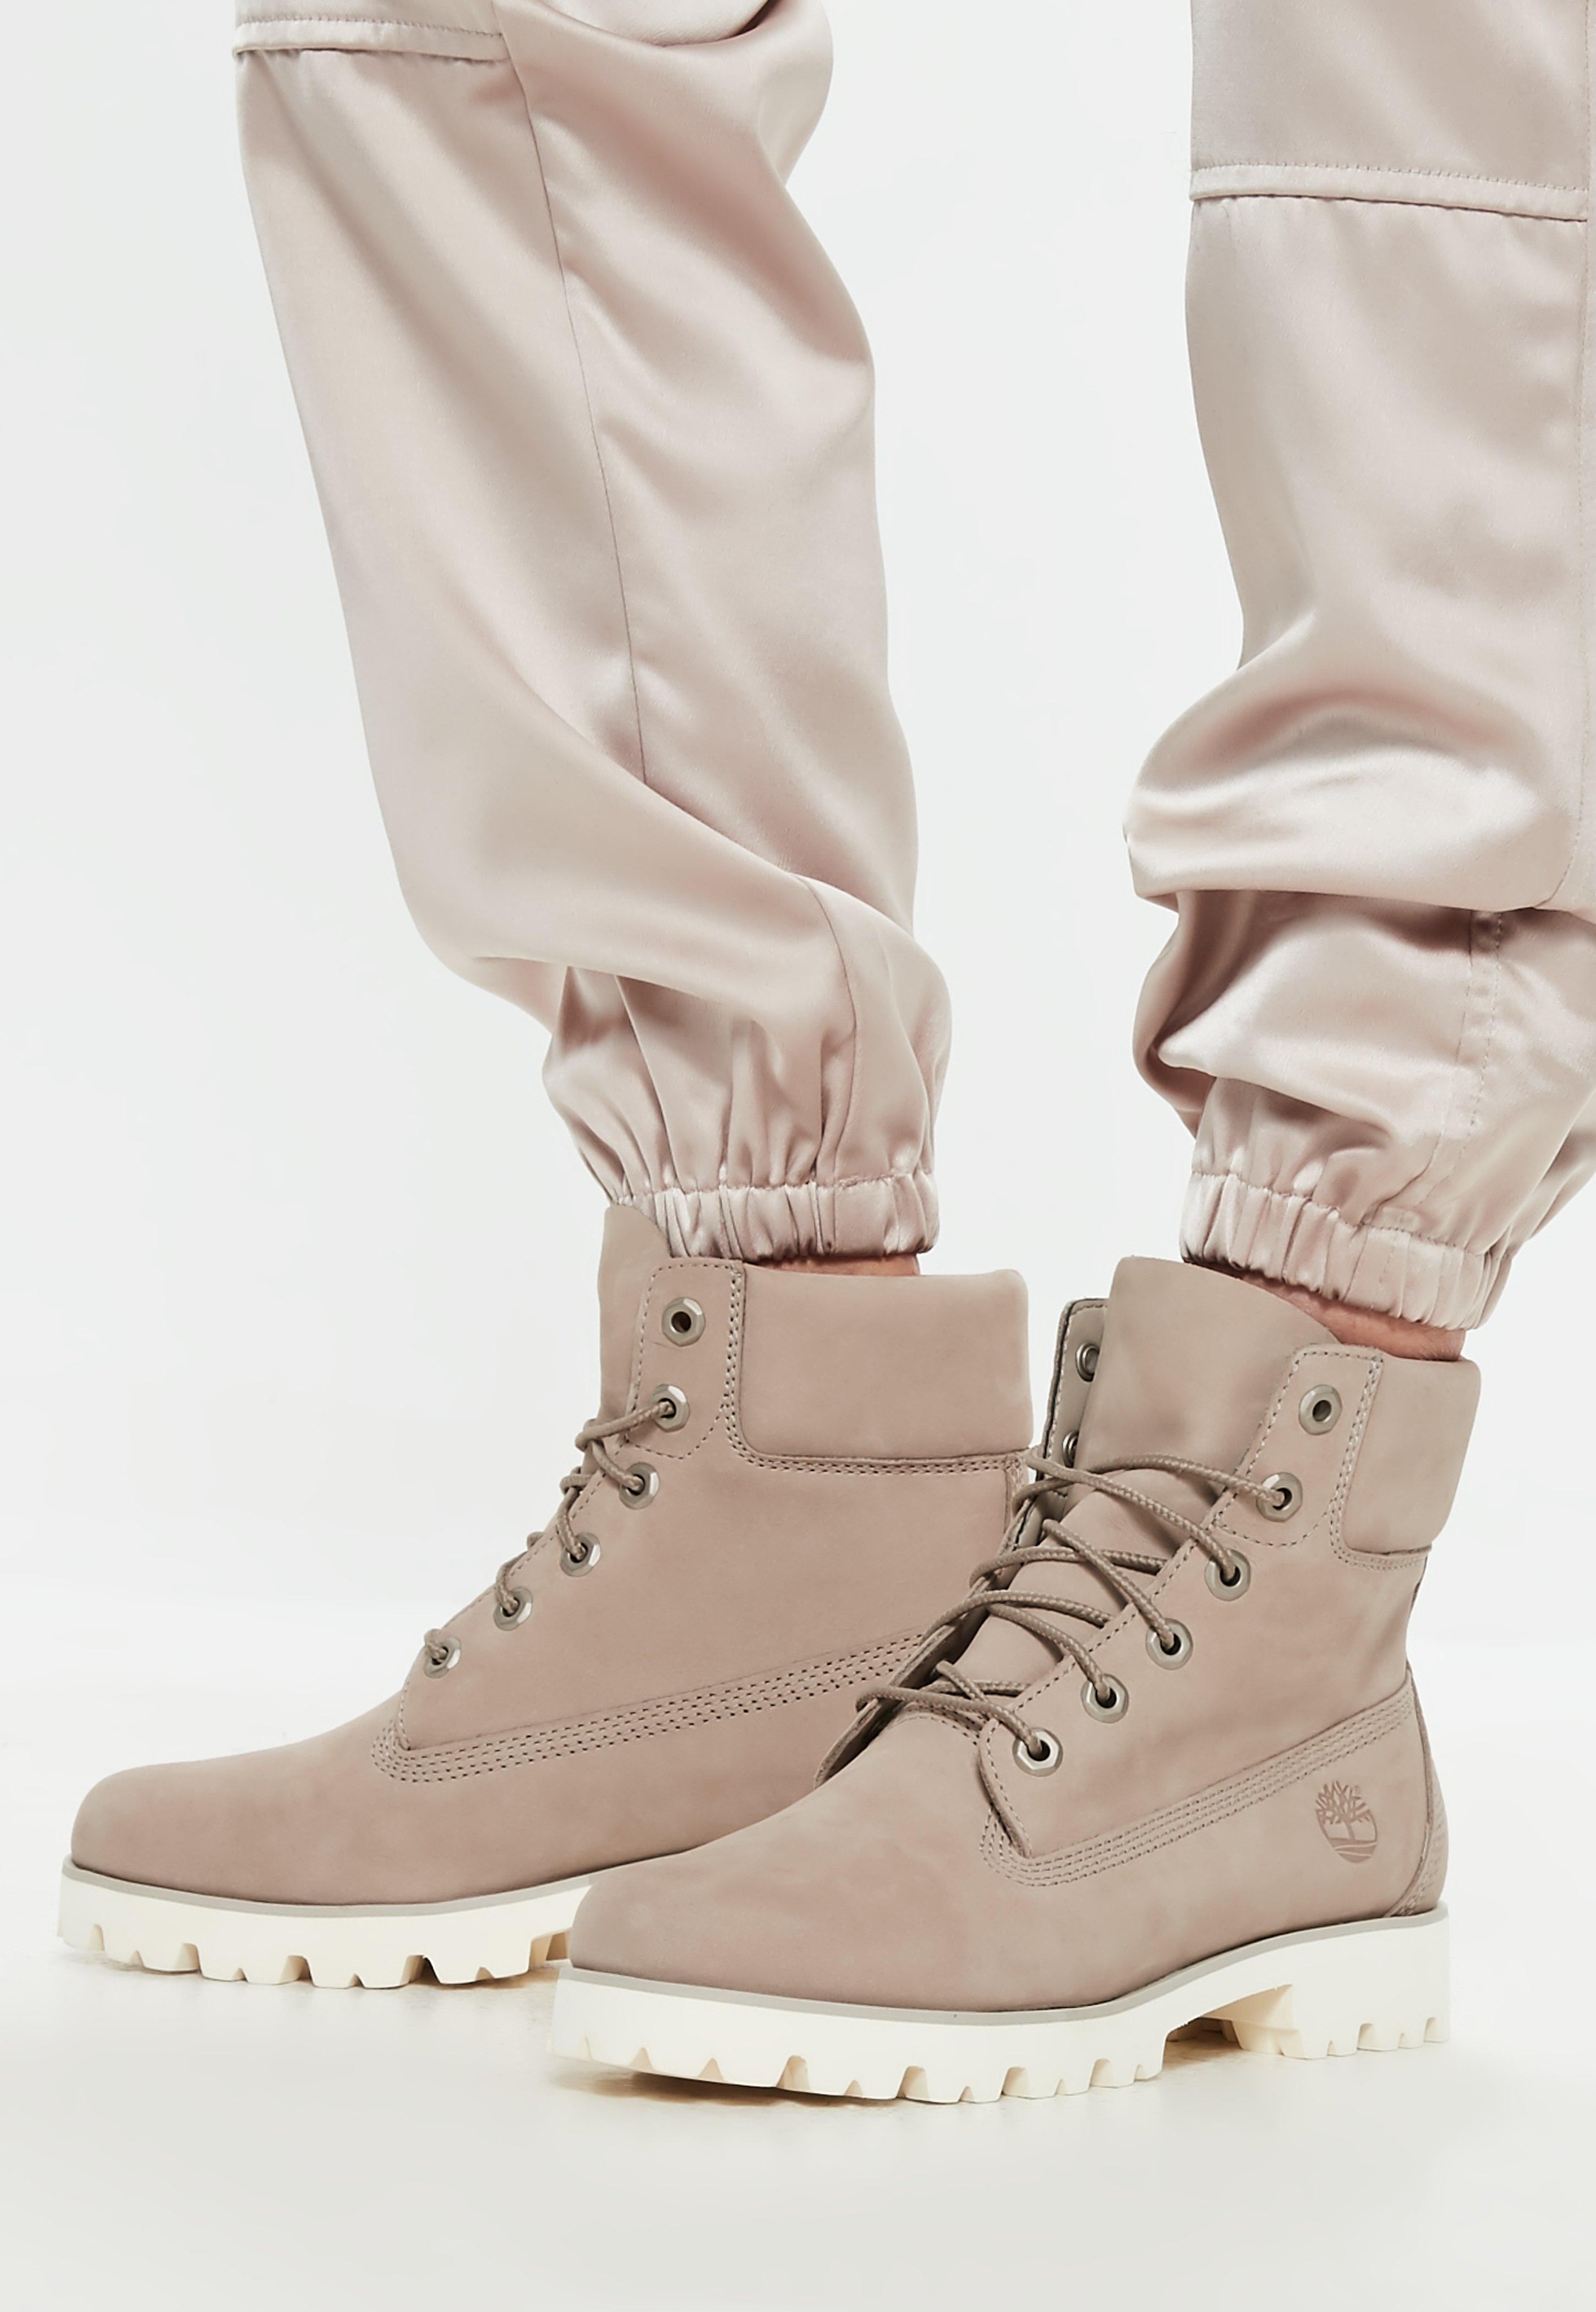 Timberland 6 Inch Light Heritage Cashmere Flat Boots clearance exclusive clearance very cheap countdown package sale online i7aVMmaB